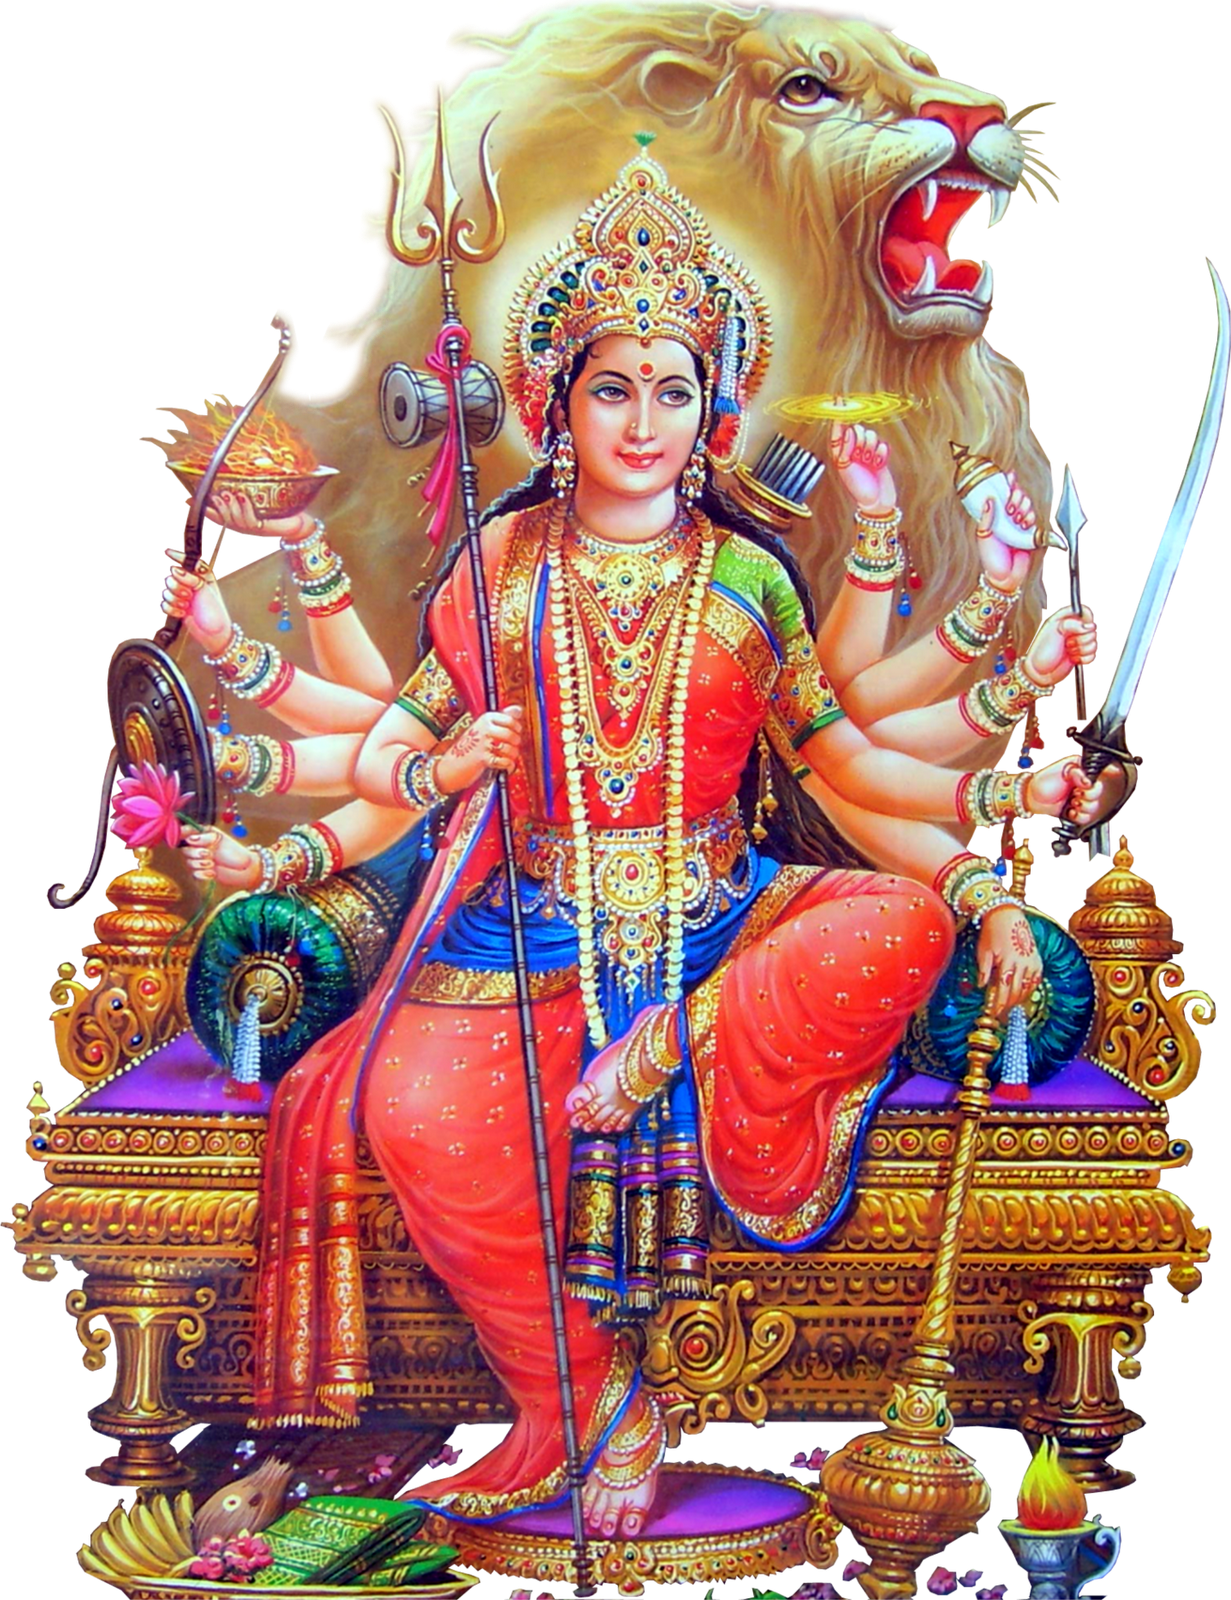 Durga Devi Hd Png, png collections at sccpre.cat.